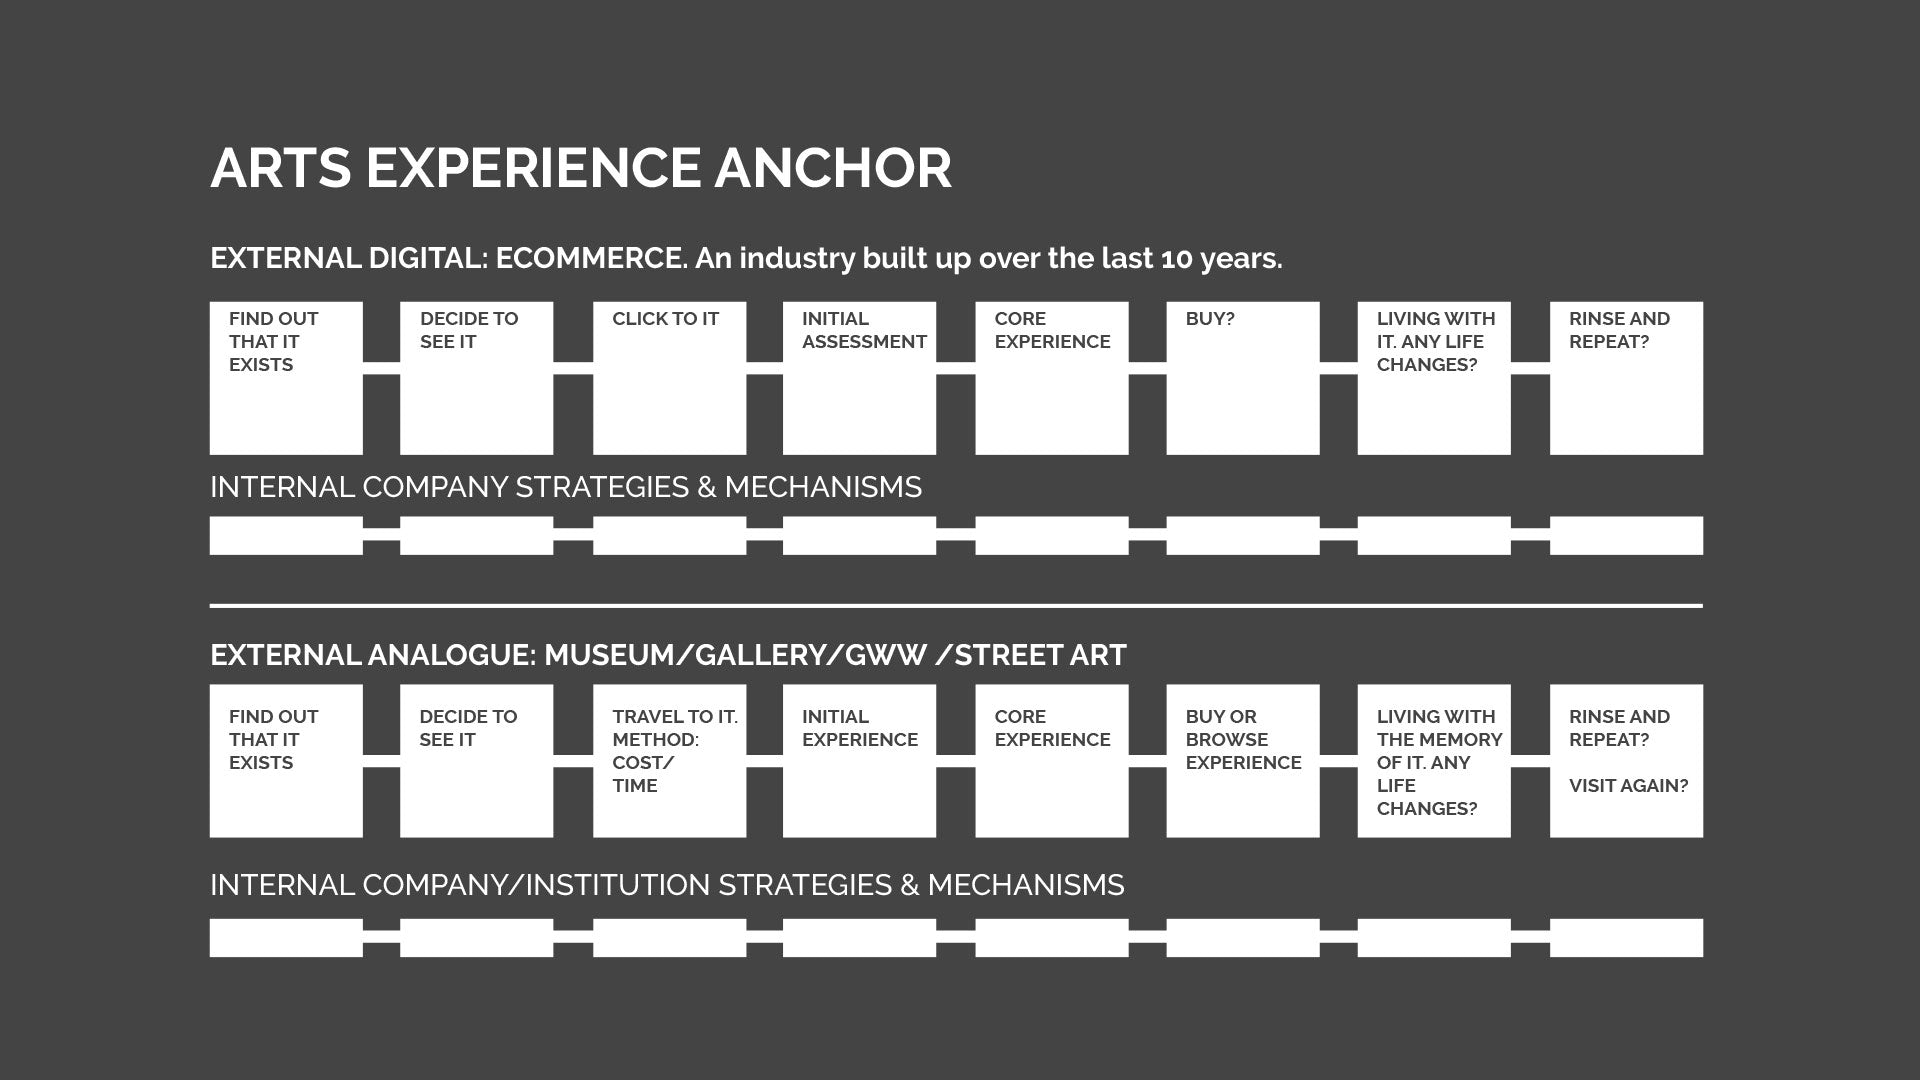 The Art Experience Anchor